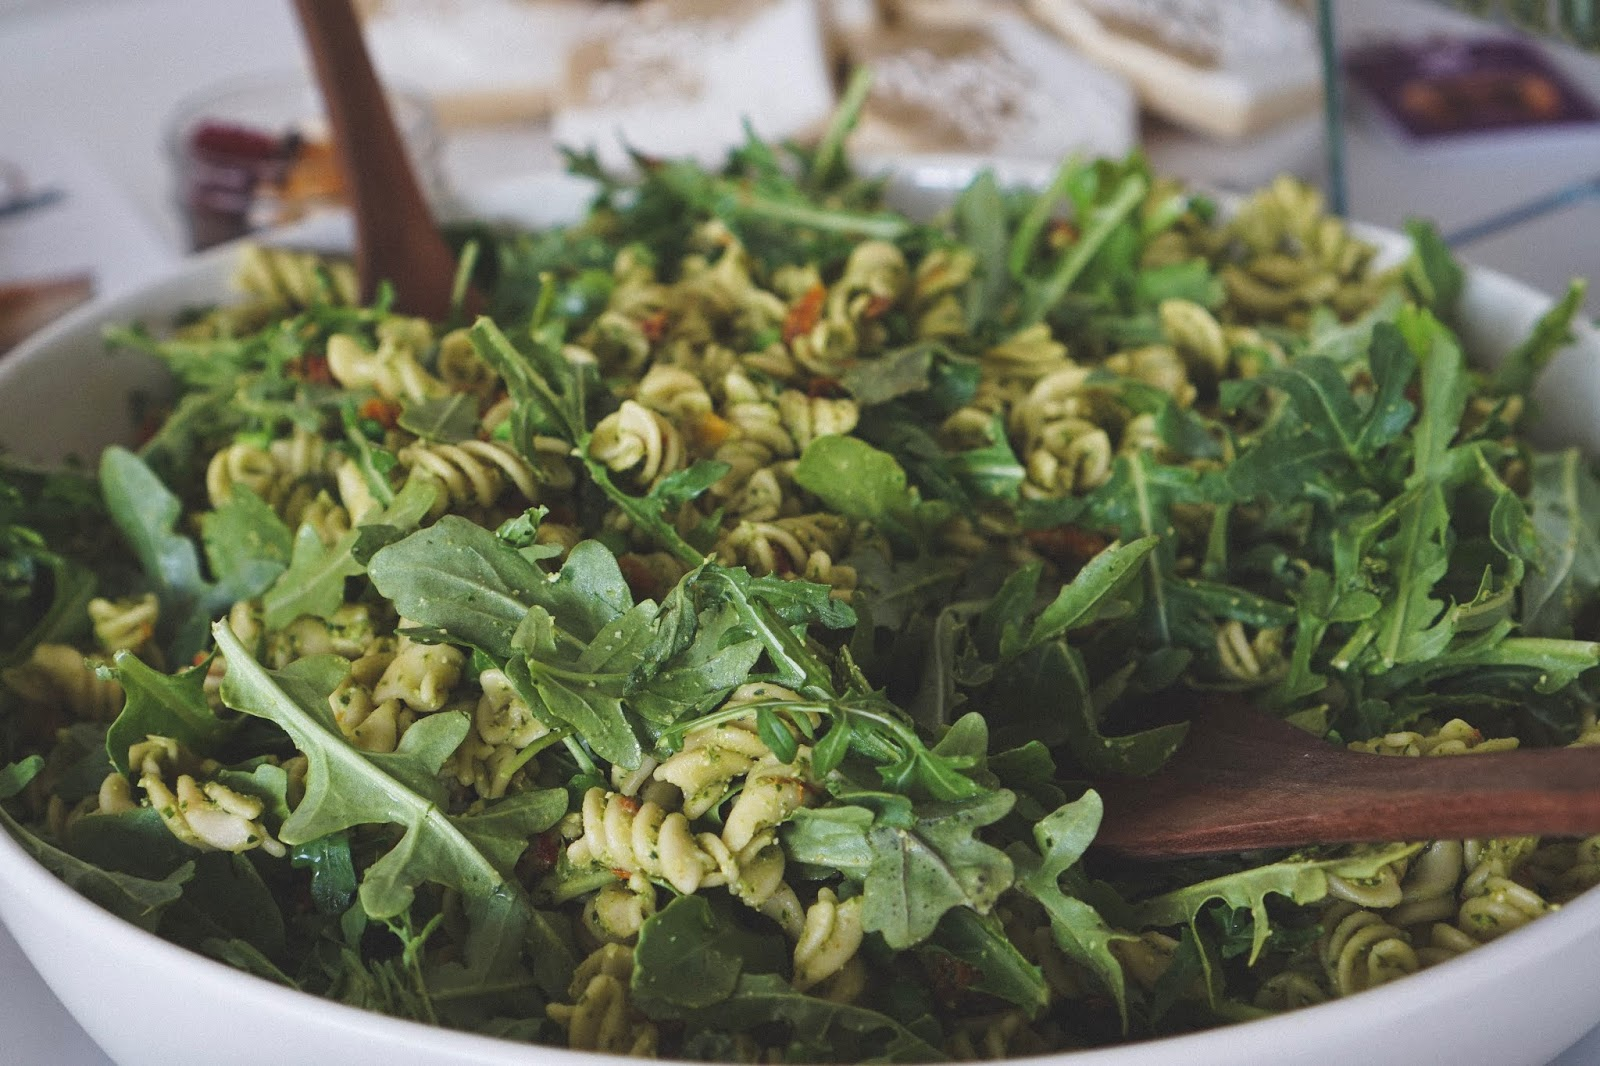 Gluten Free Vegan Pesto Pasta Salad with English Peas, Sundried Tomatoes and Arugula